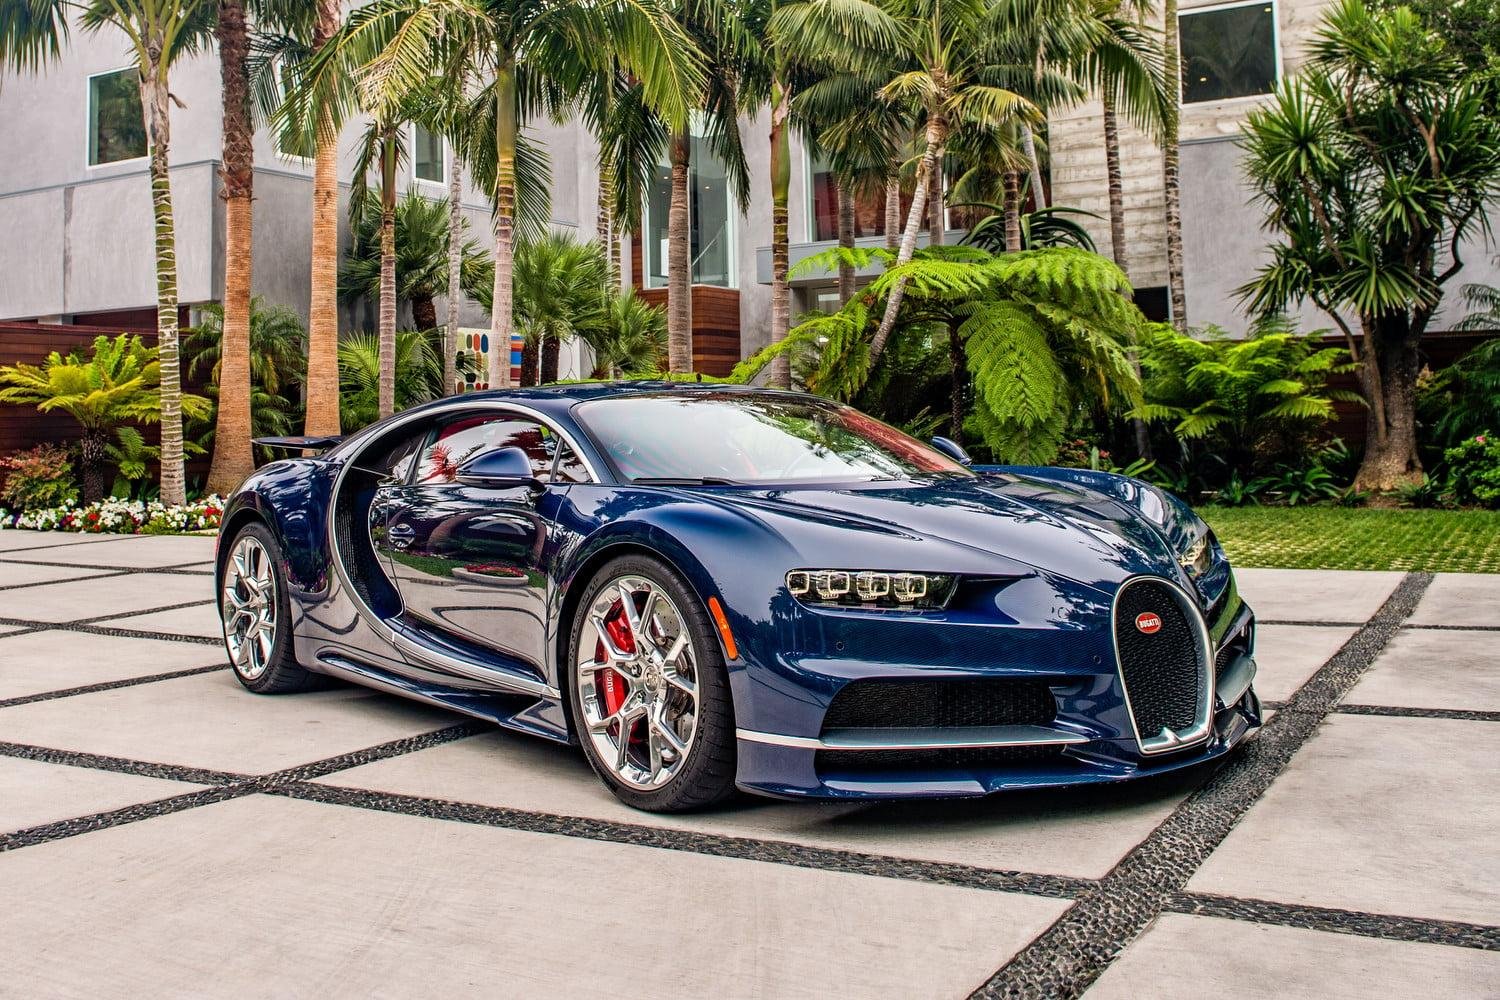 Bugatti Doesnt Deal With Recalls Like An Ordinary Car Company